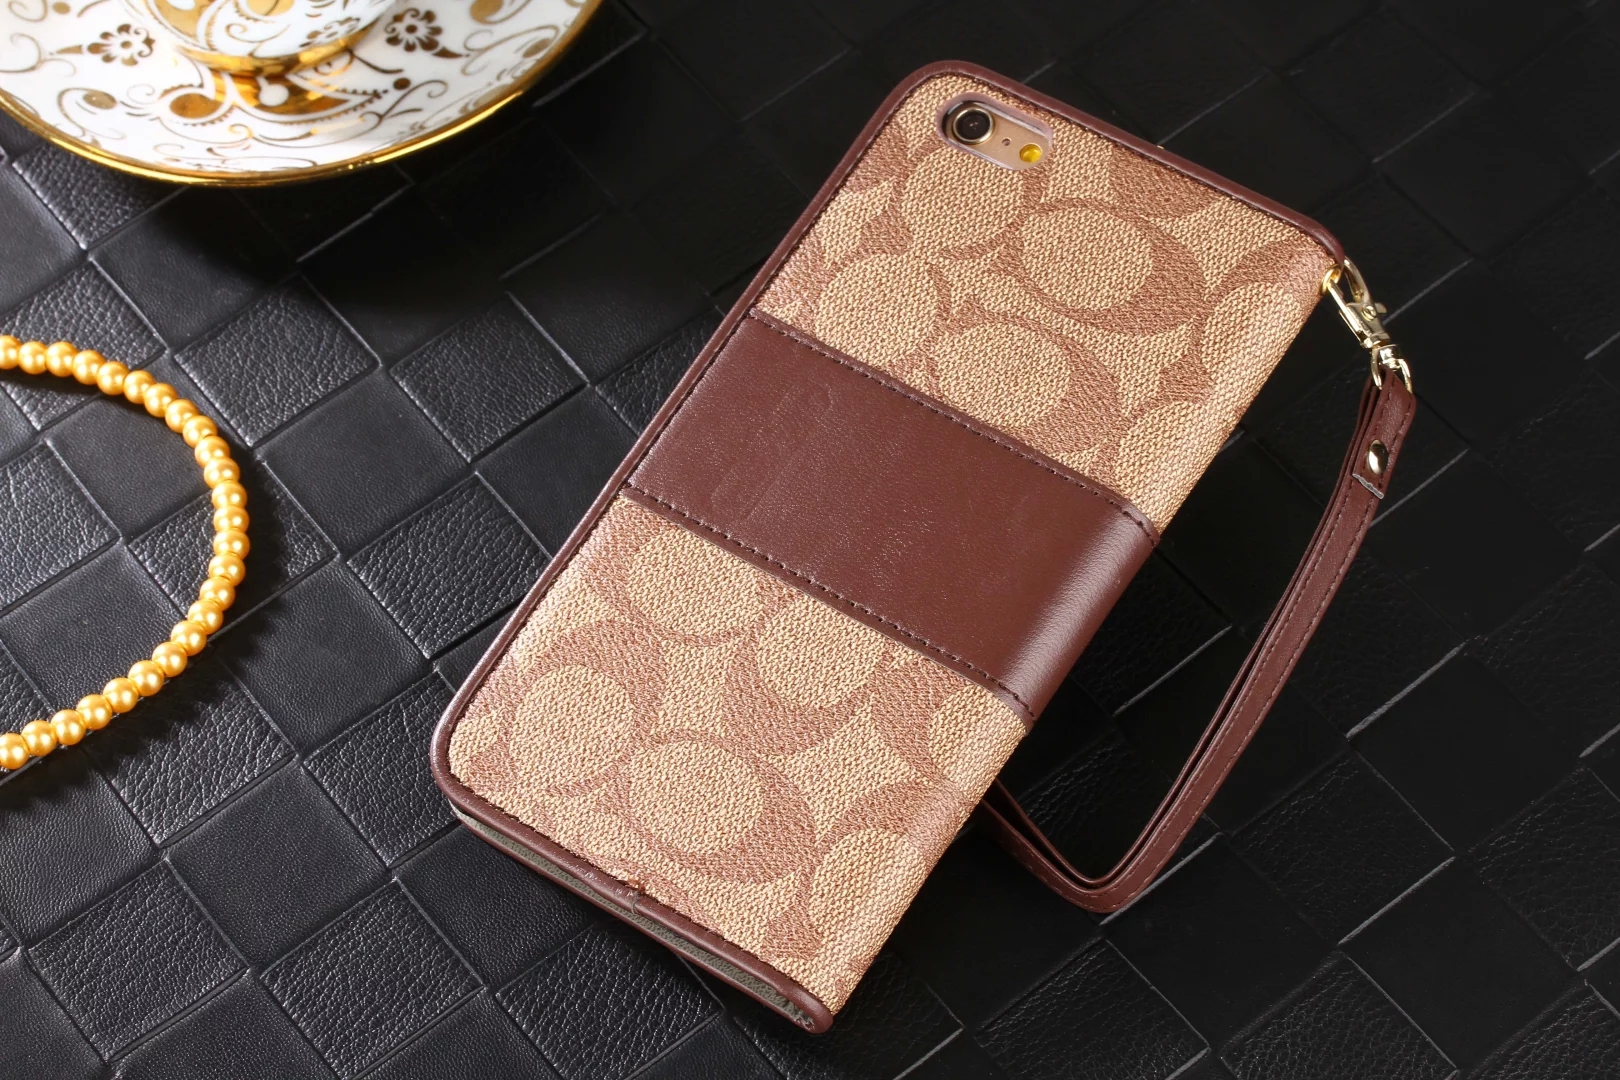 cell phone cases for iphone 6s iphone 6s cases designer brands fashion iphone6s case latest iphone rumors phone caes order phone cases online cell phone jack cheap lifeproof cases life cell phone case